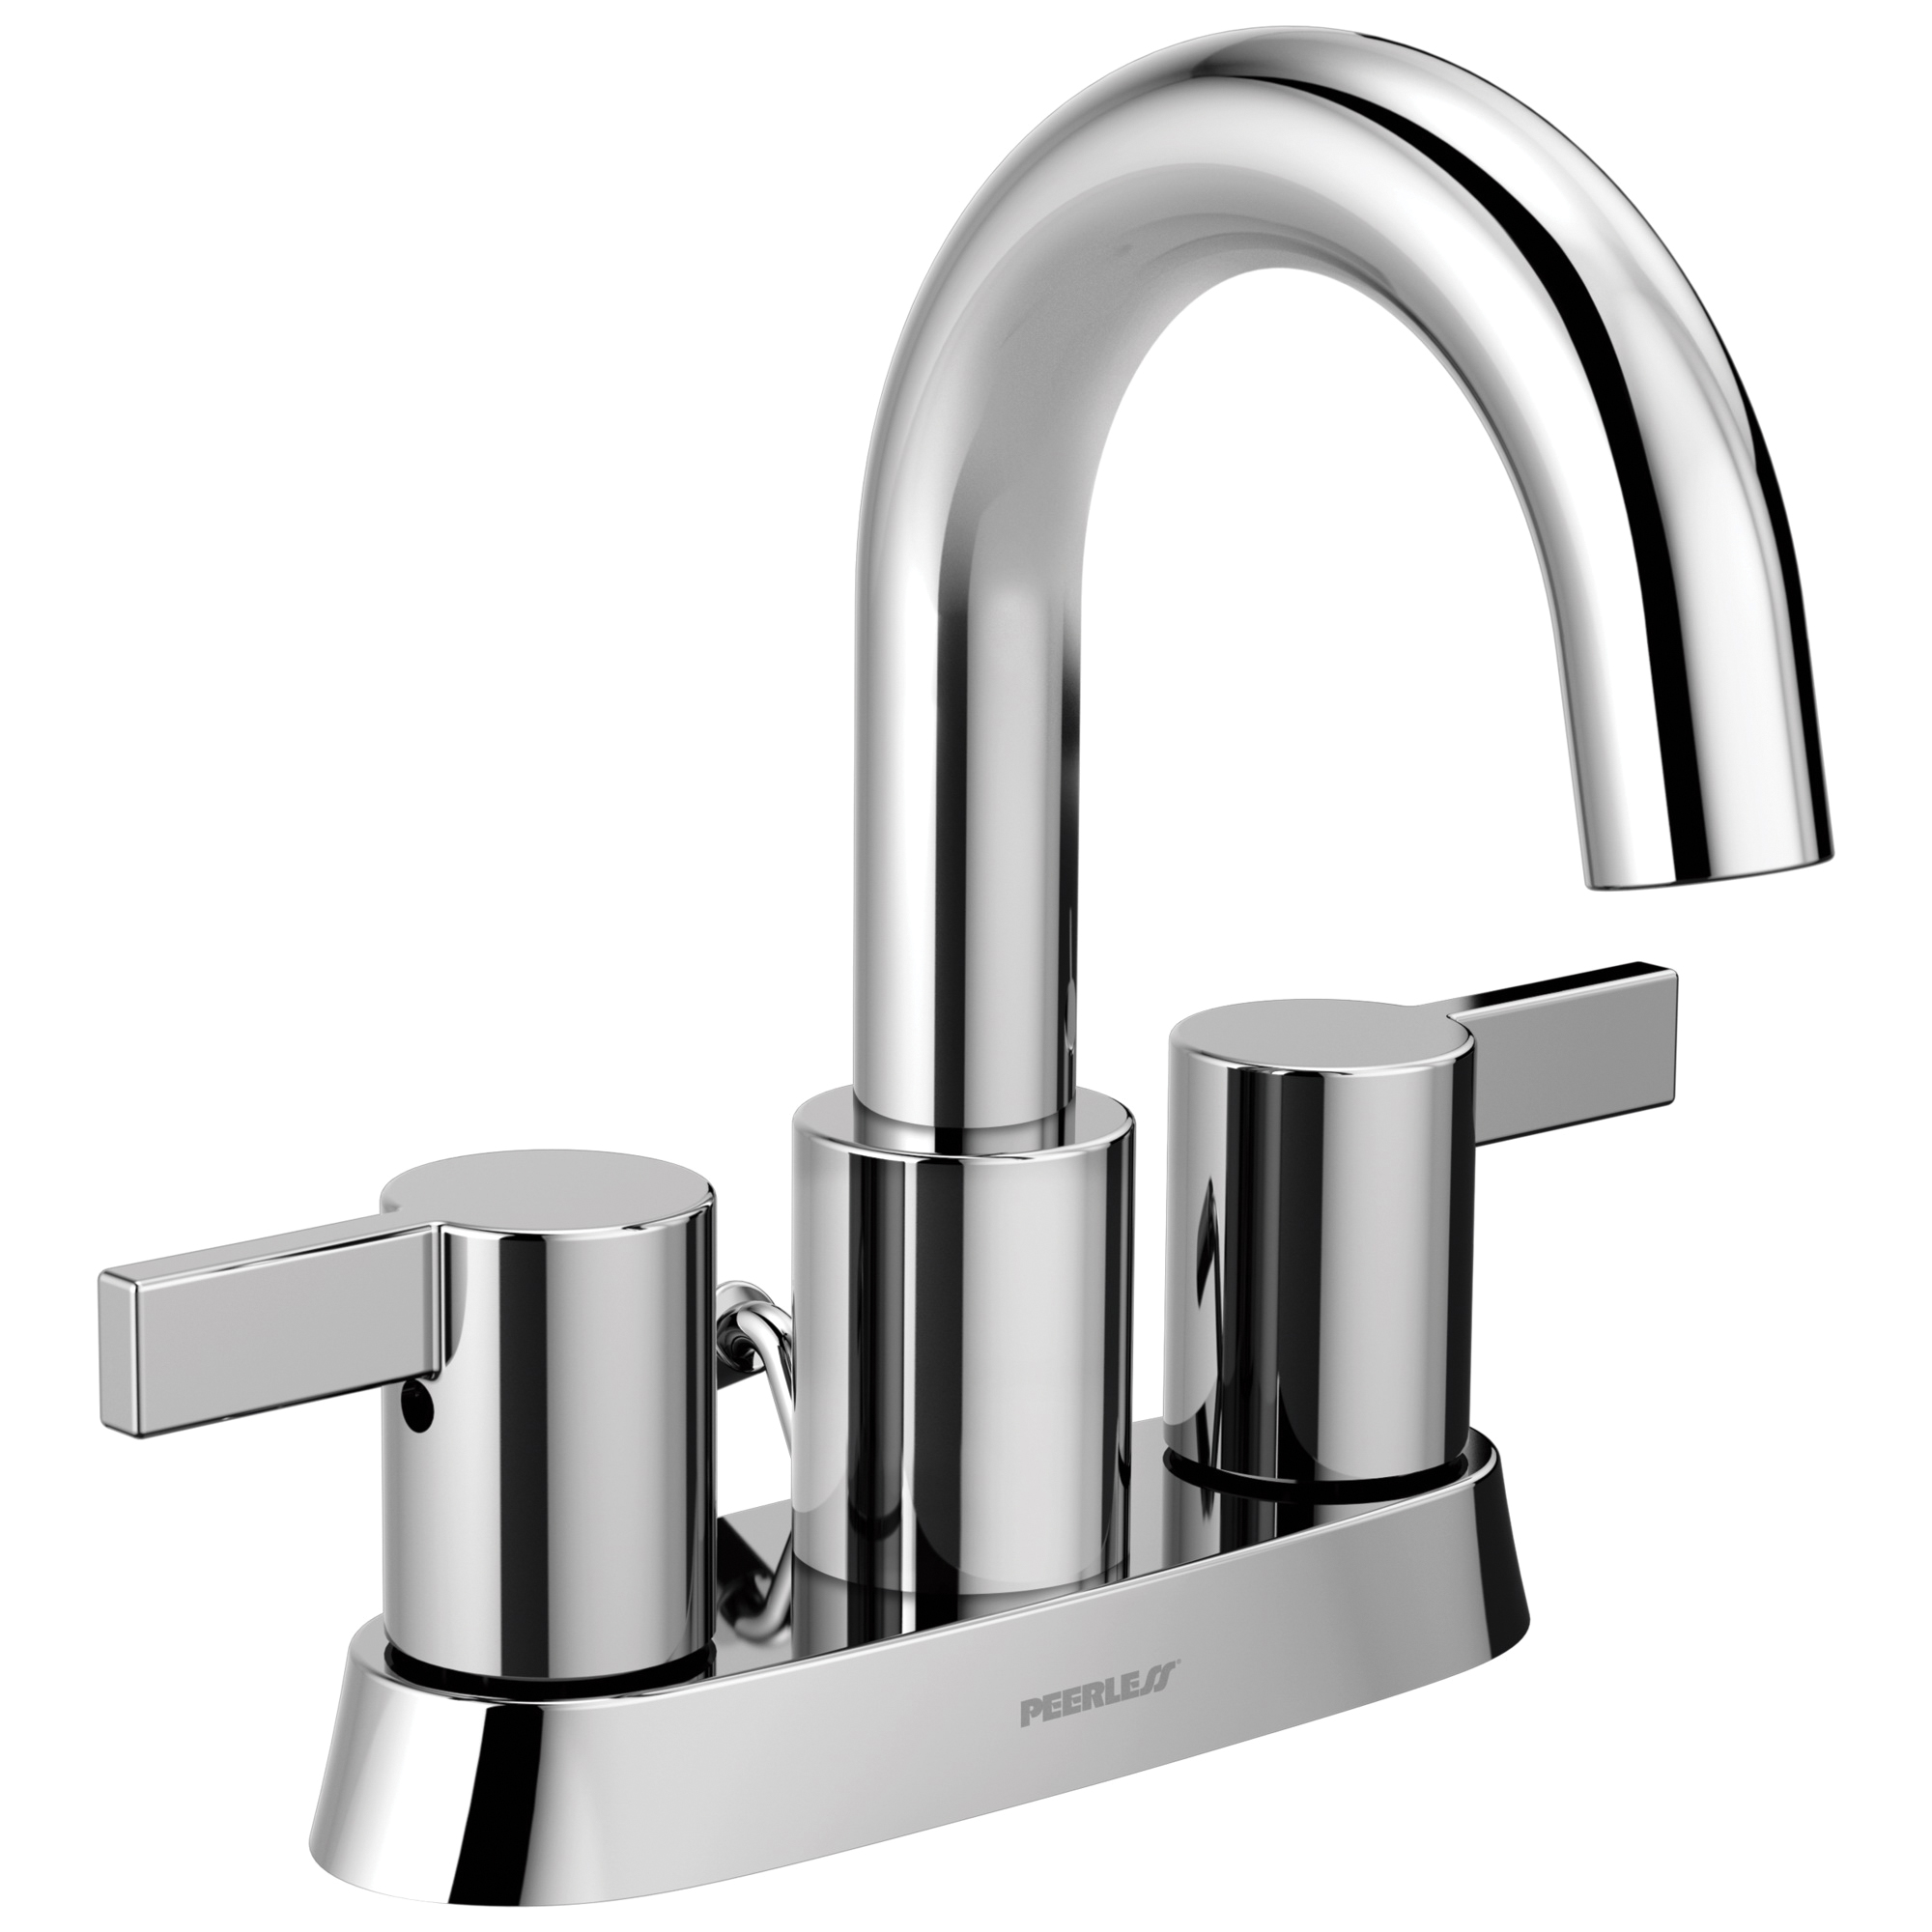 Peerless® P299102LF Centerset Lavatory Faucet, Apex, Chrome Plated, 2 Handles, 50/50 Pop-Up Drain, 1.2 gpm